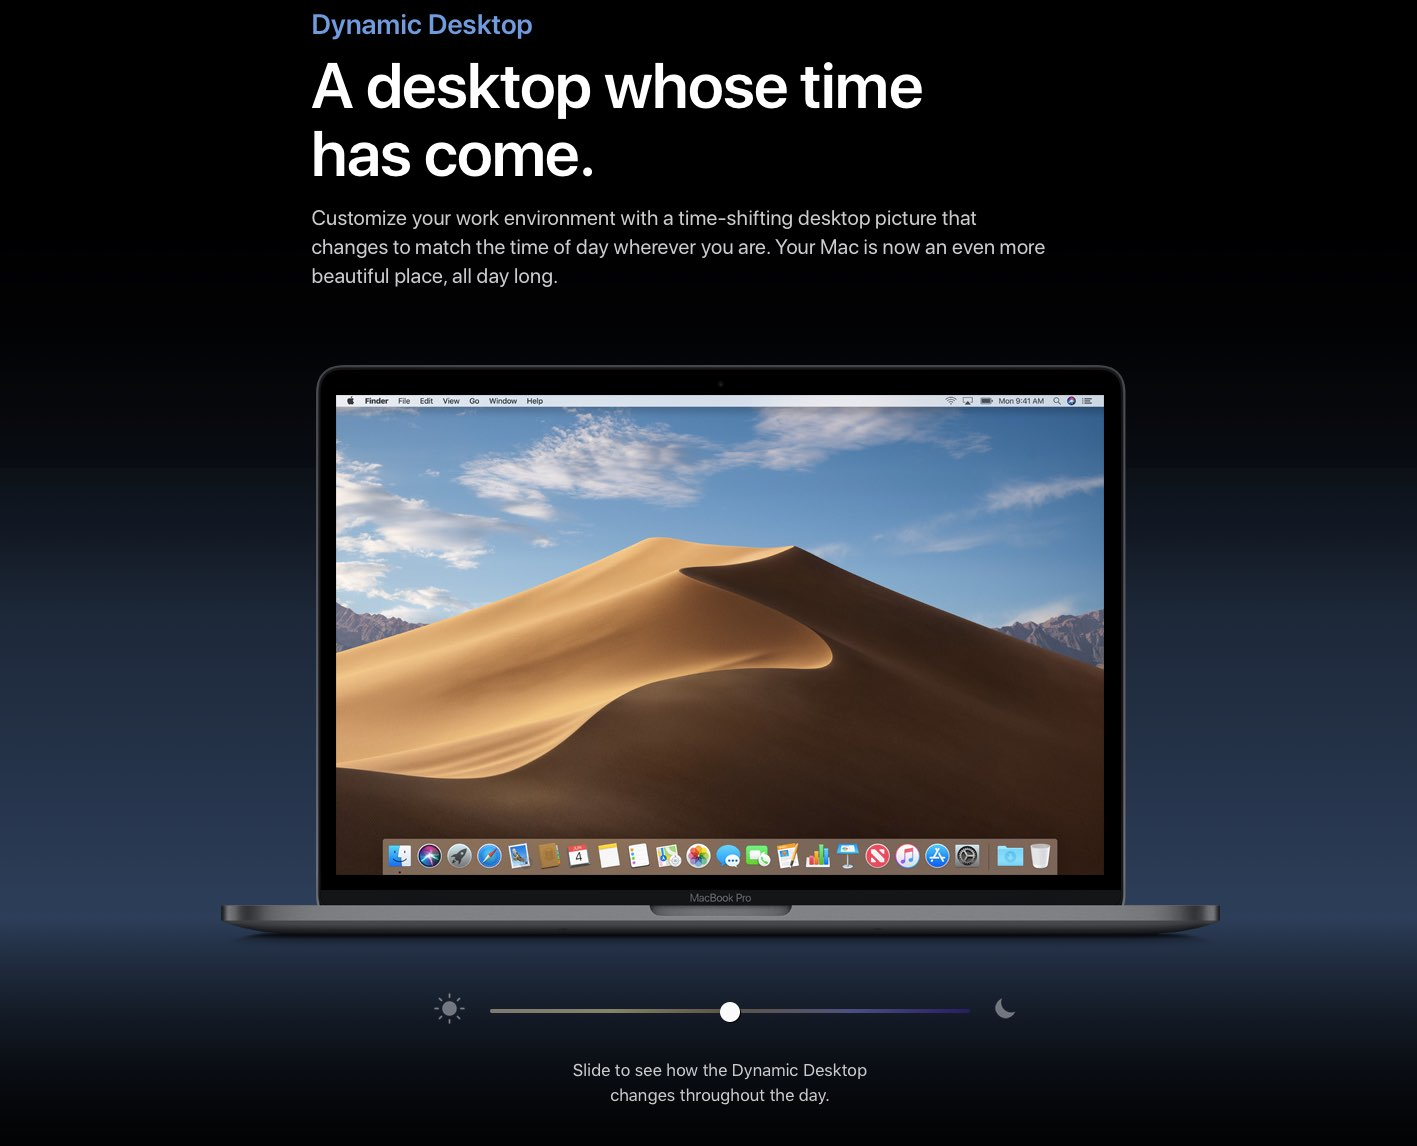 macOS Mojave sports a time-shifting wallpaper that changes